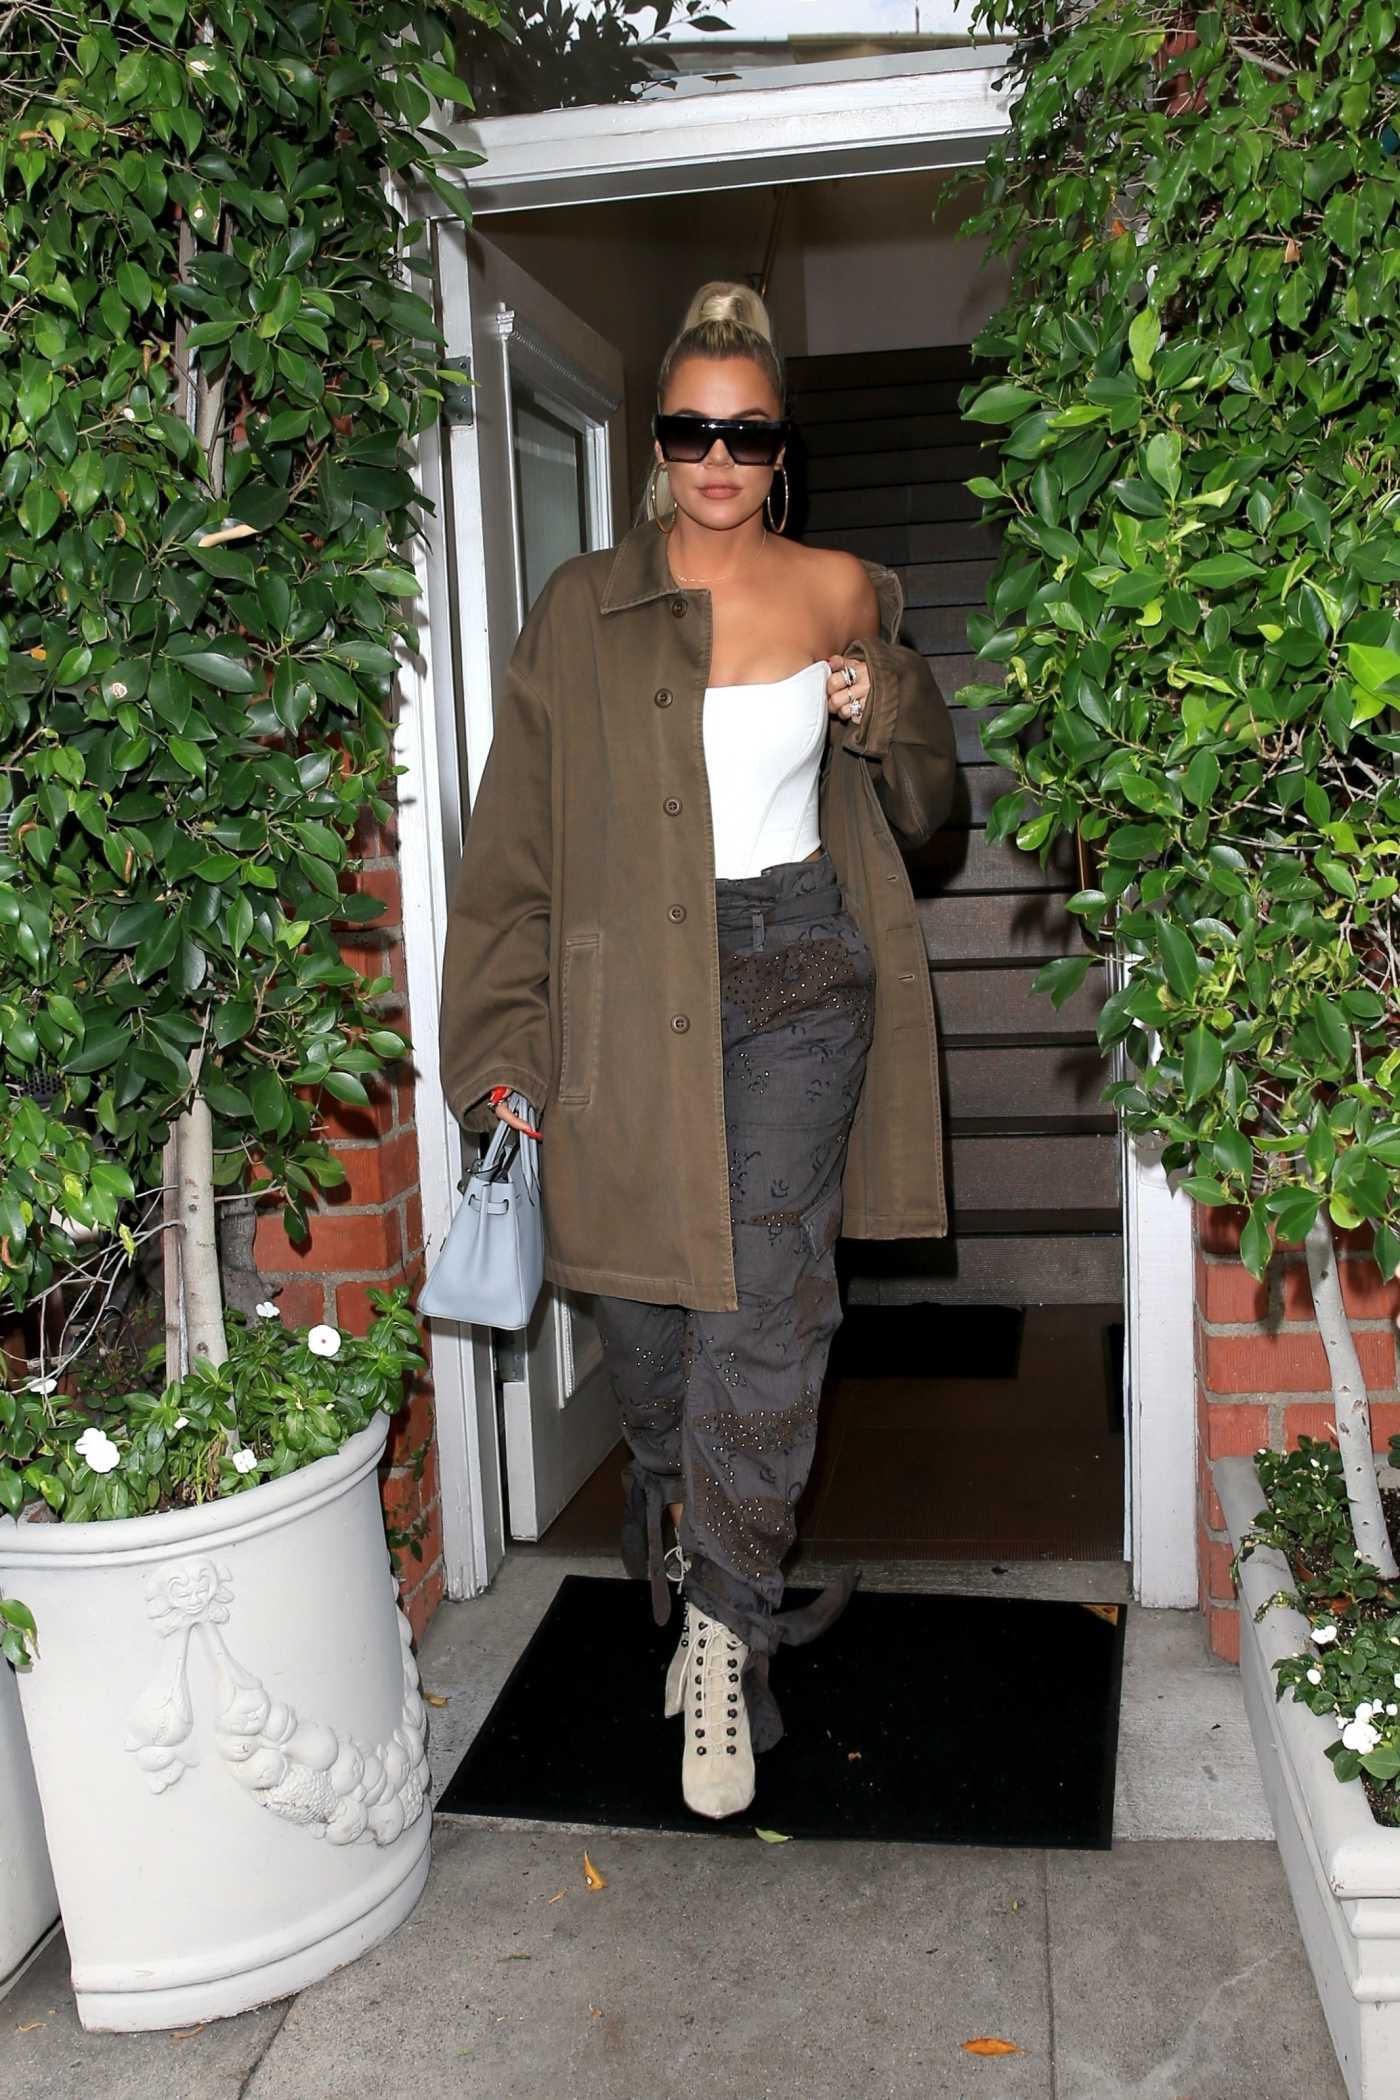 Khloe Kardashian in a Beige Trench Coat Out for Lunch in Los Angeles 09/26/2019